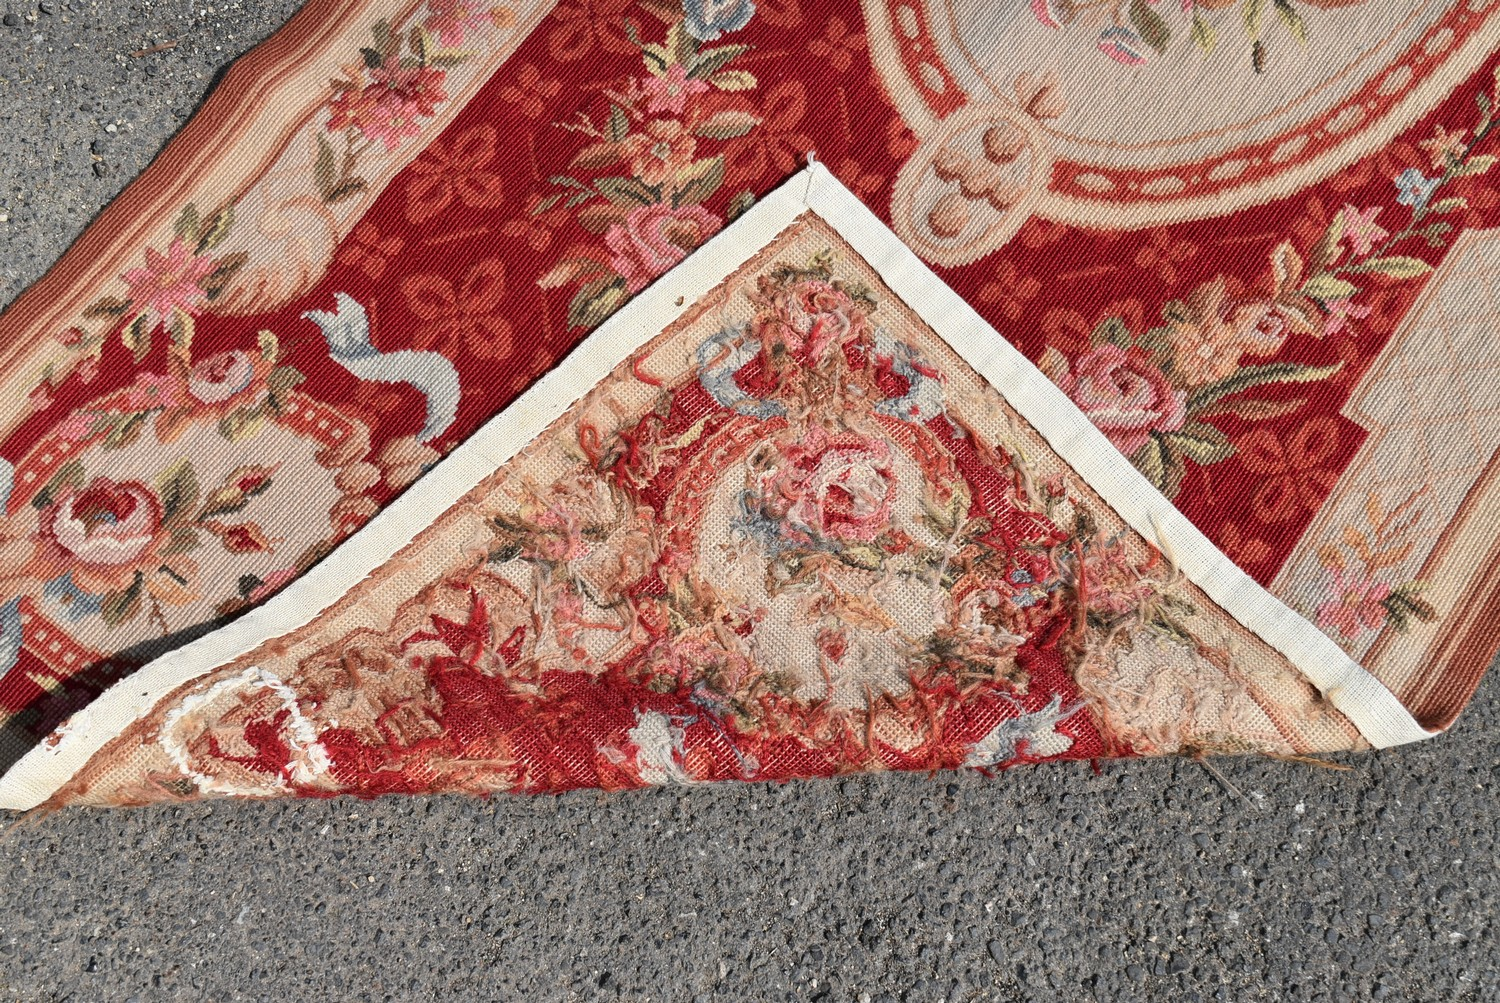 A needlepoint rug with central floral cartouche on a burgundy field within ribbon and flowerhead - Image 4 of 4